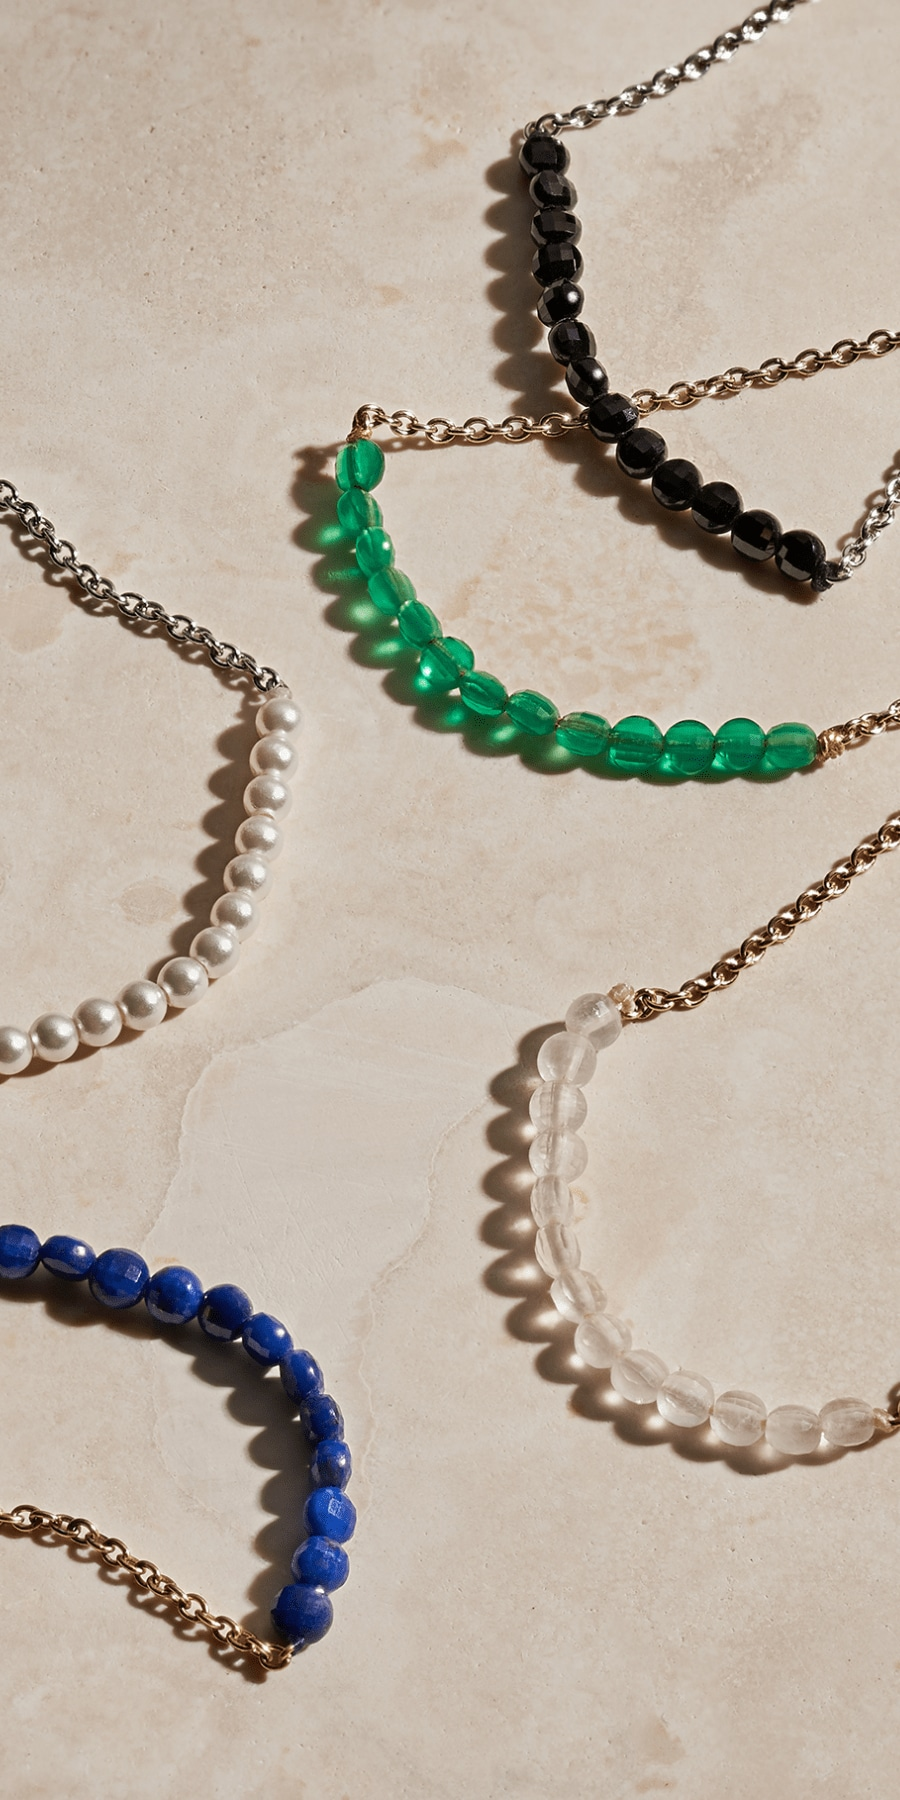 Five necklaces with wellness beads.